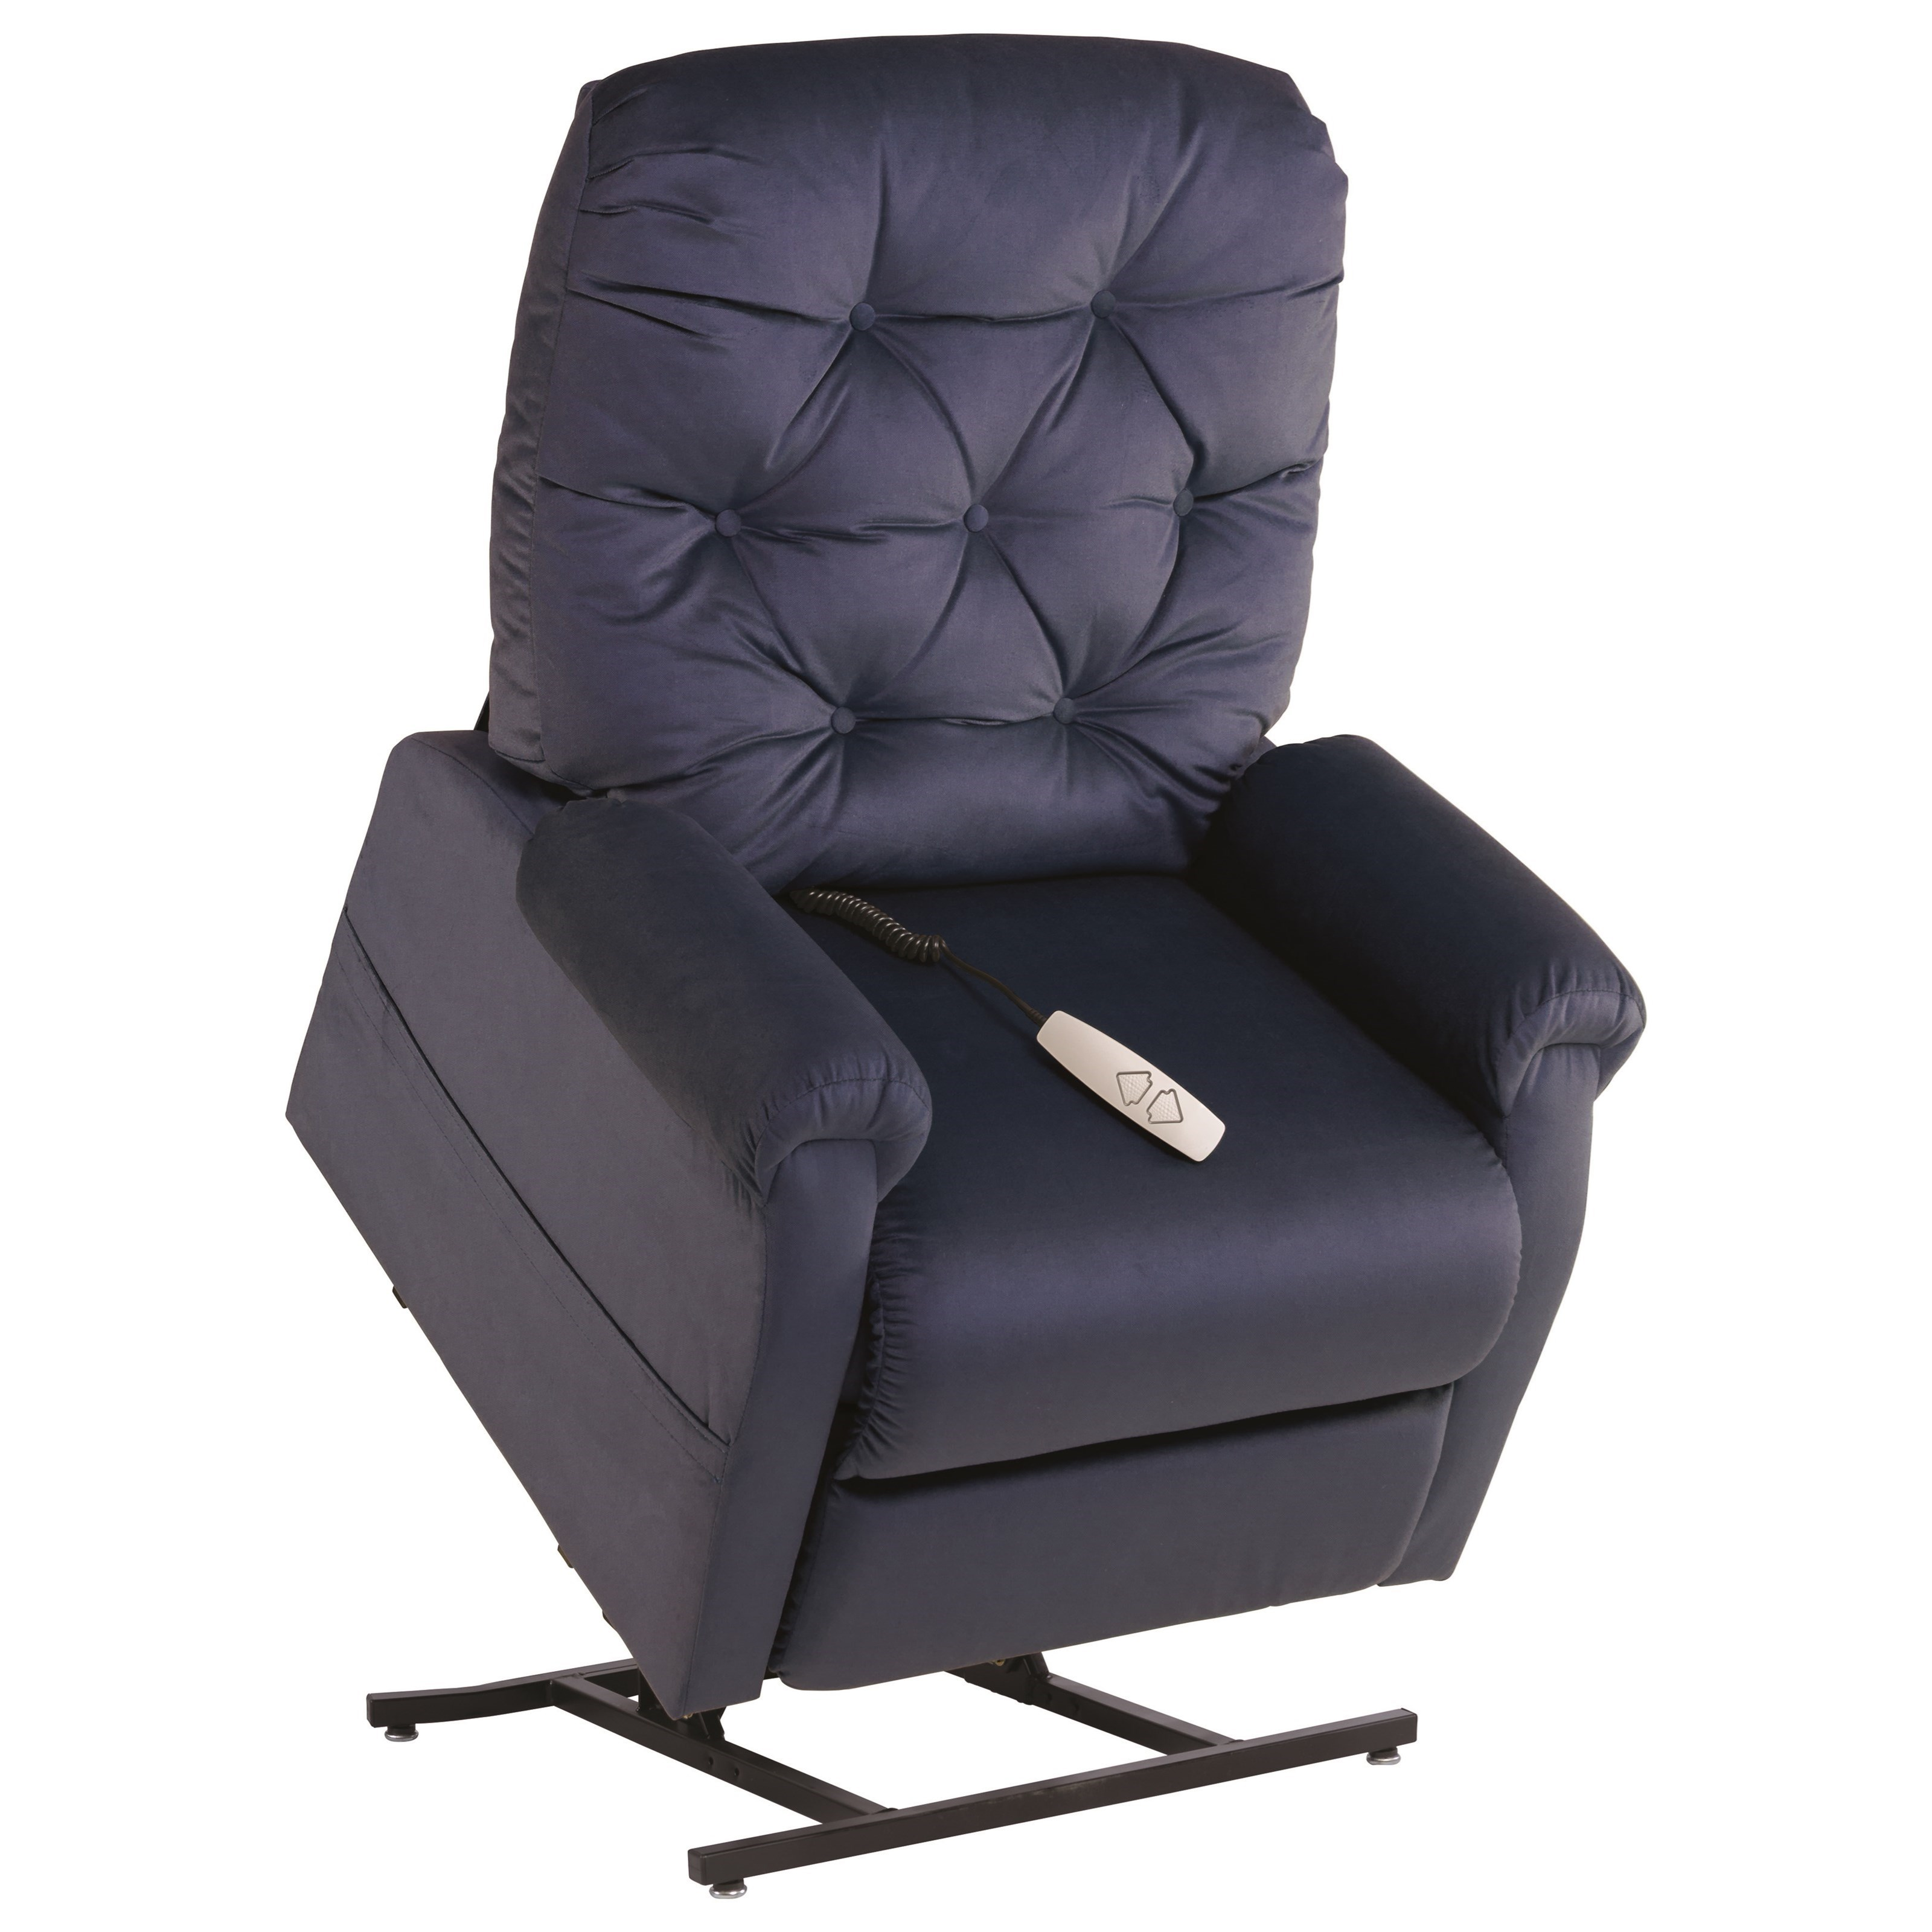 Recliner Lift Chairs Ultimate Power Recliner Lift Chairs 3 Position Reclining